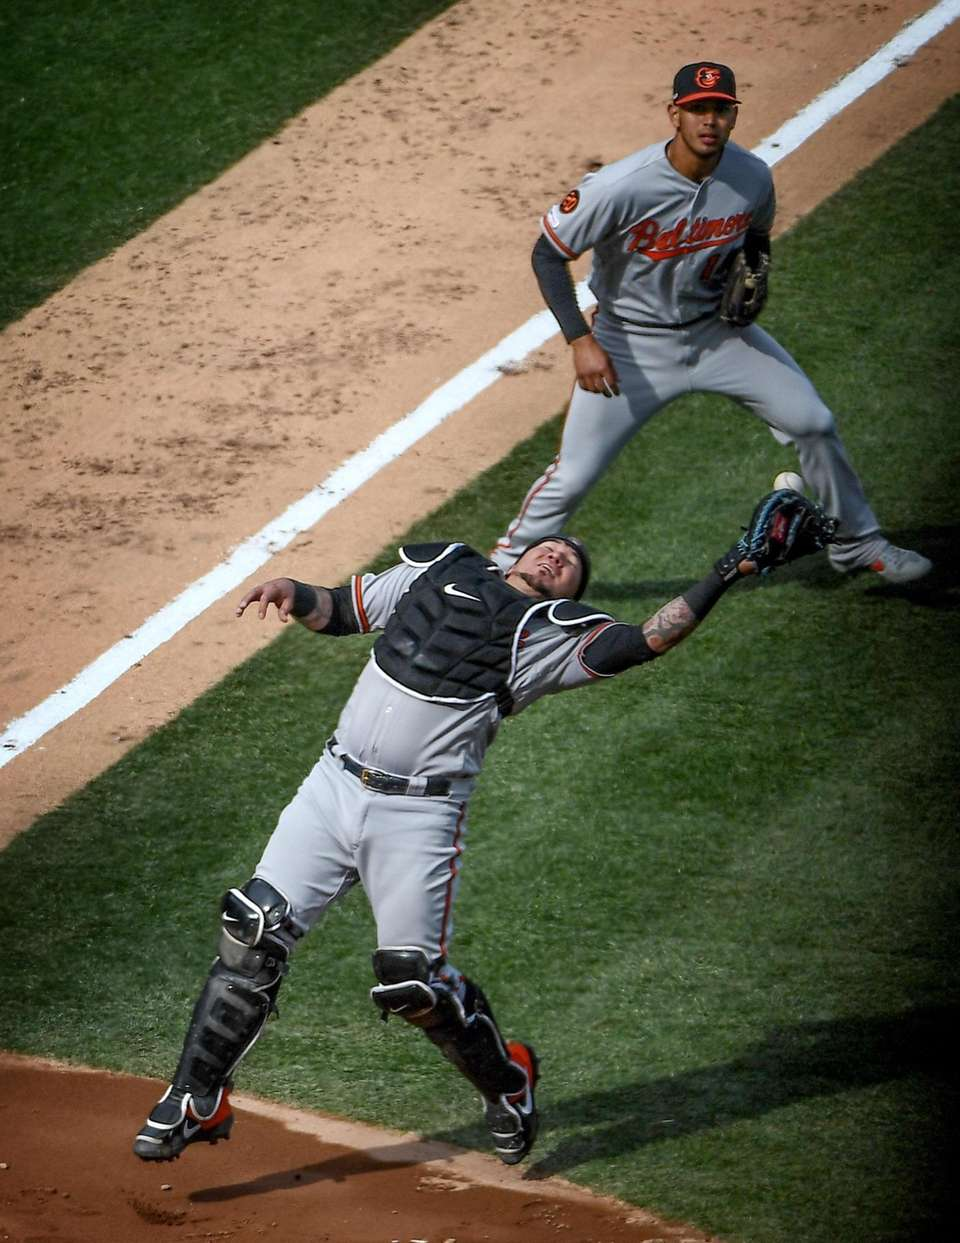 Baltimore Orioles catcher Jesus Sucre drops a pop